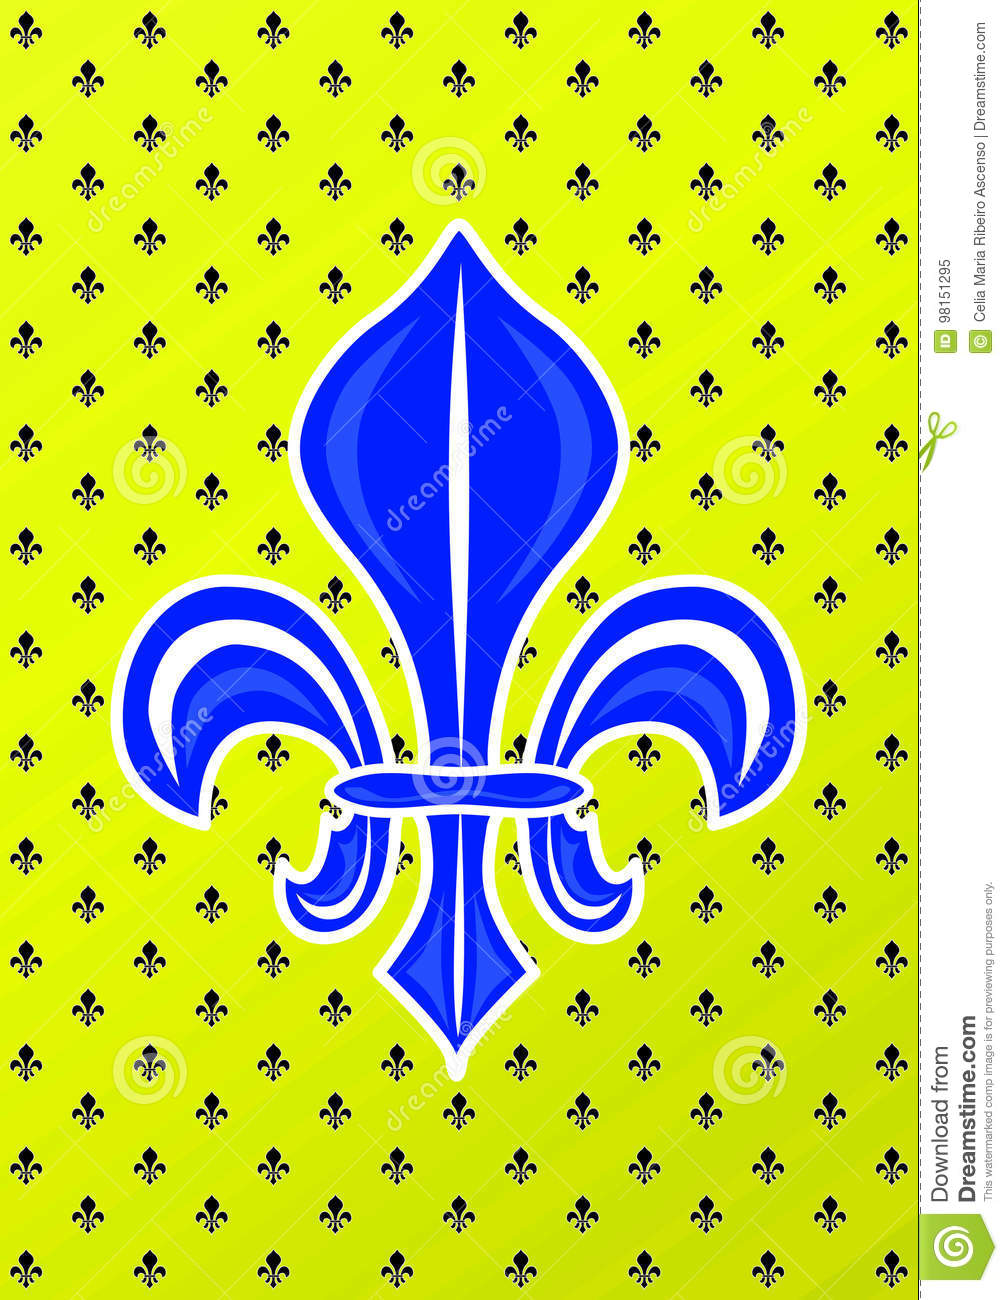 Blue lily french royalty symbol stock illustration illustration blue lily french royalty symbol biocorpaavc Gallery